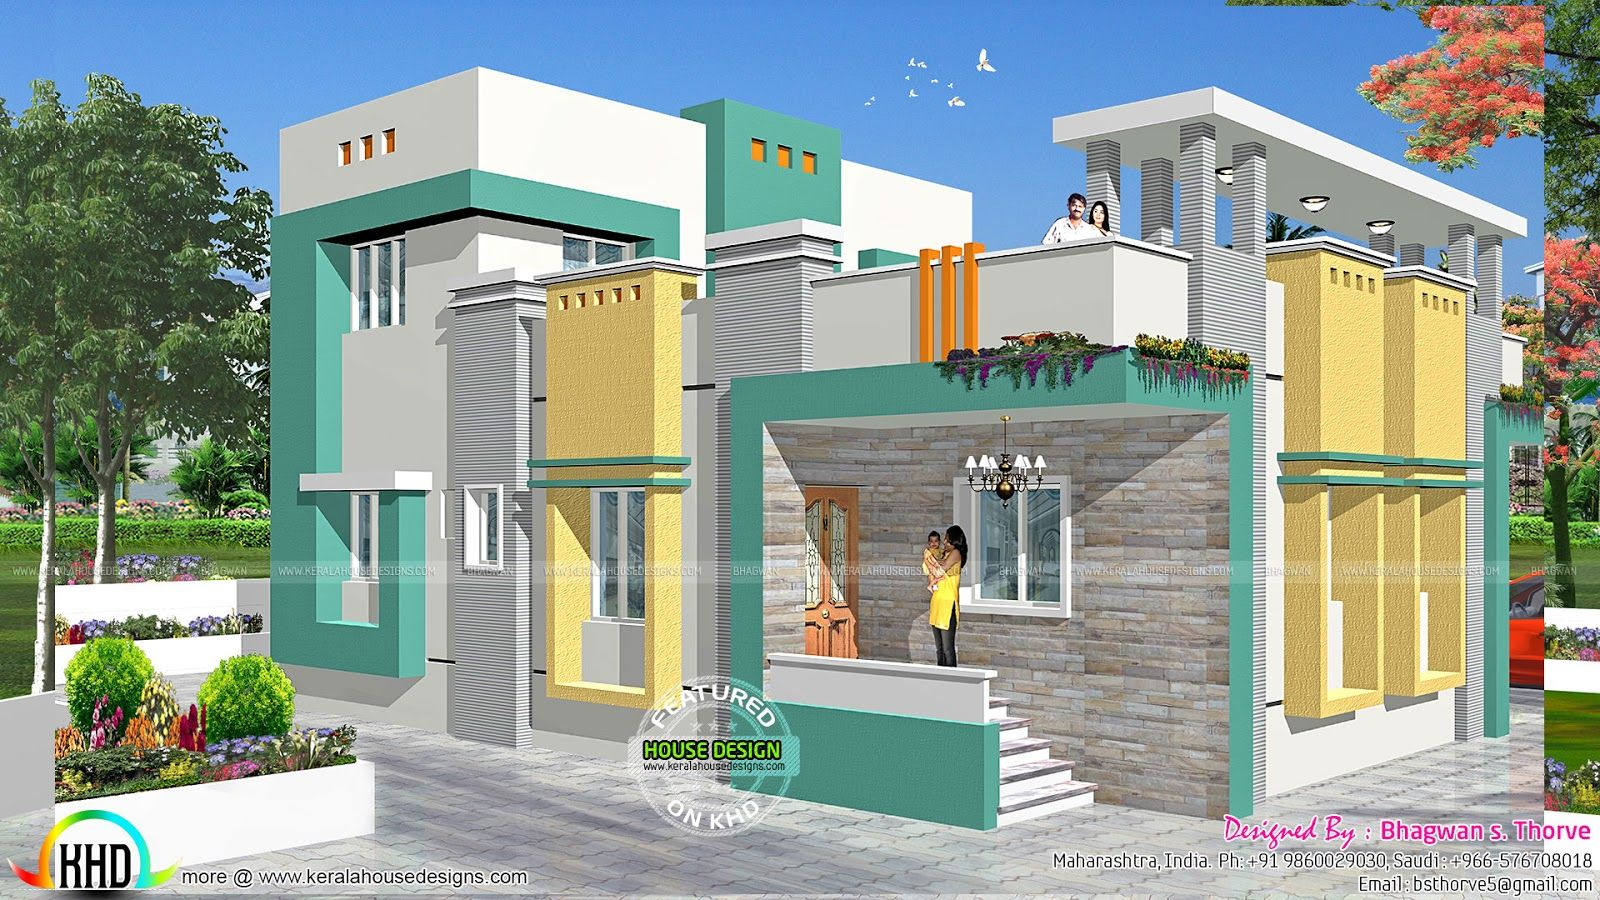 Home Design 2016 indoor outdoor living by dfd house plans Indian Home Design 2016